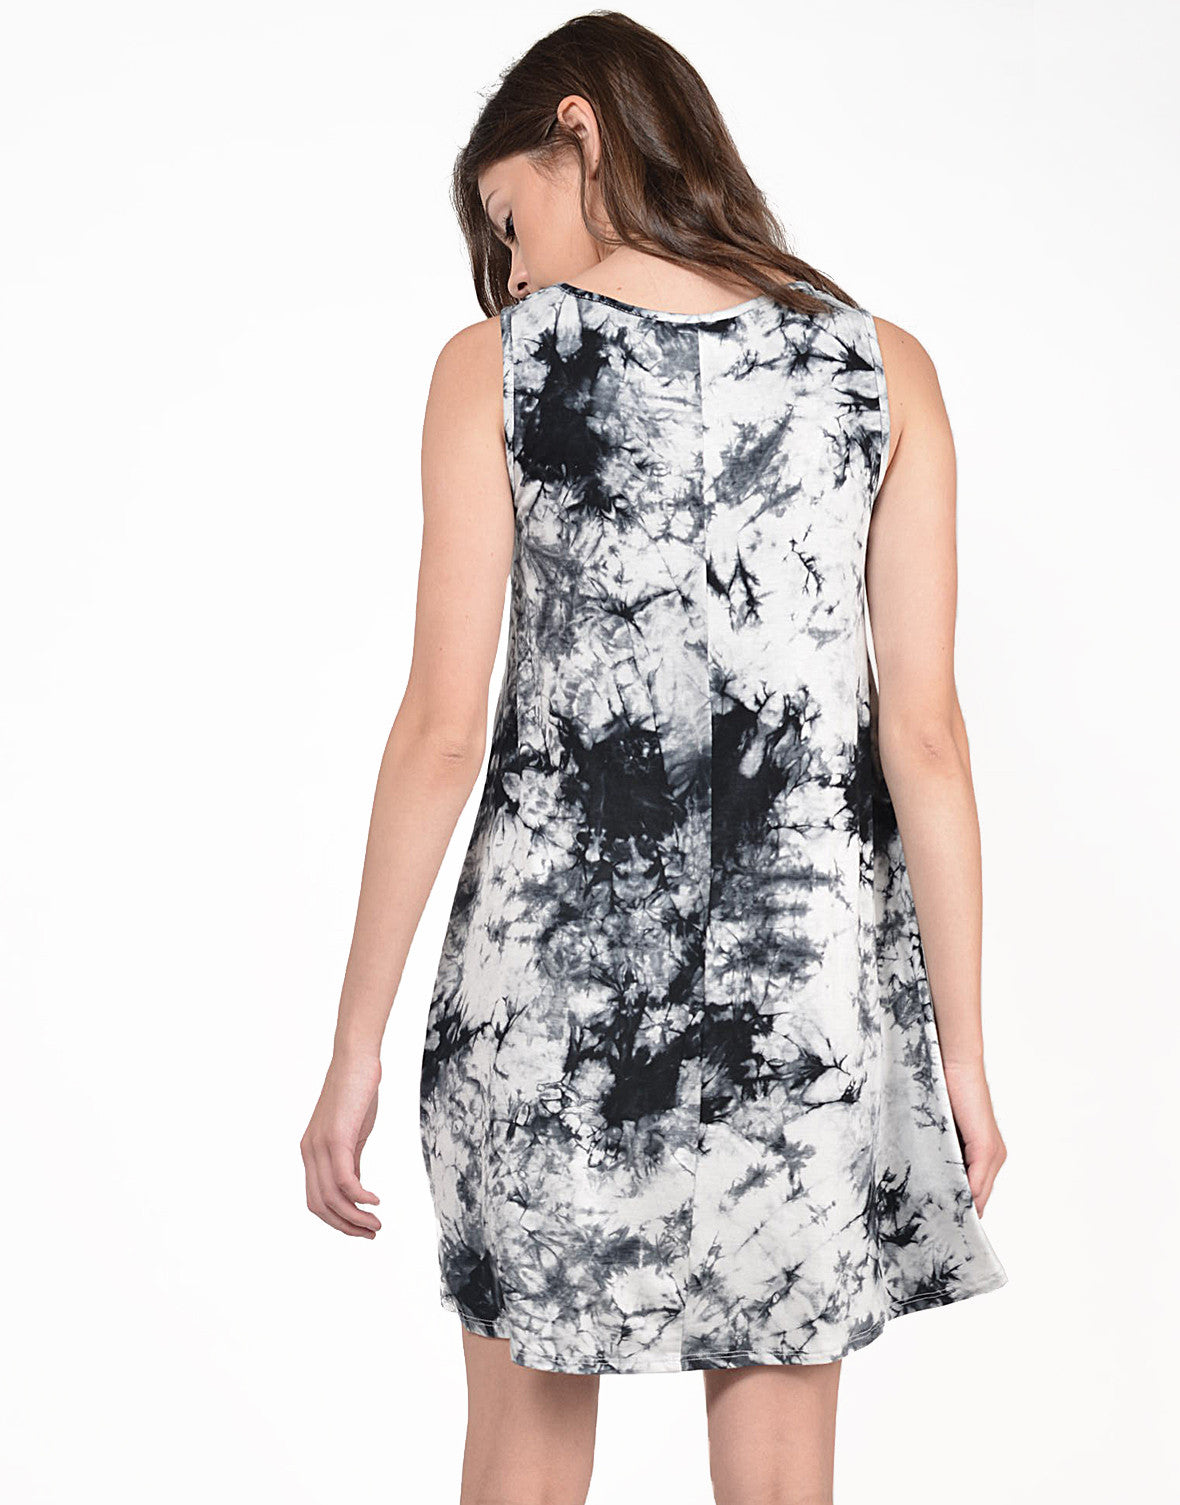 Back View of Ink Dye Tank Dress